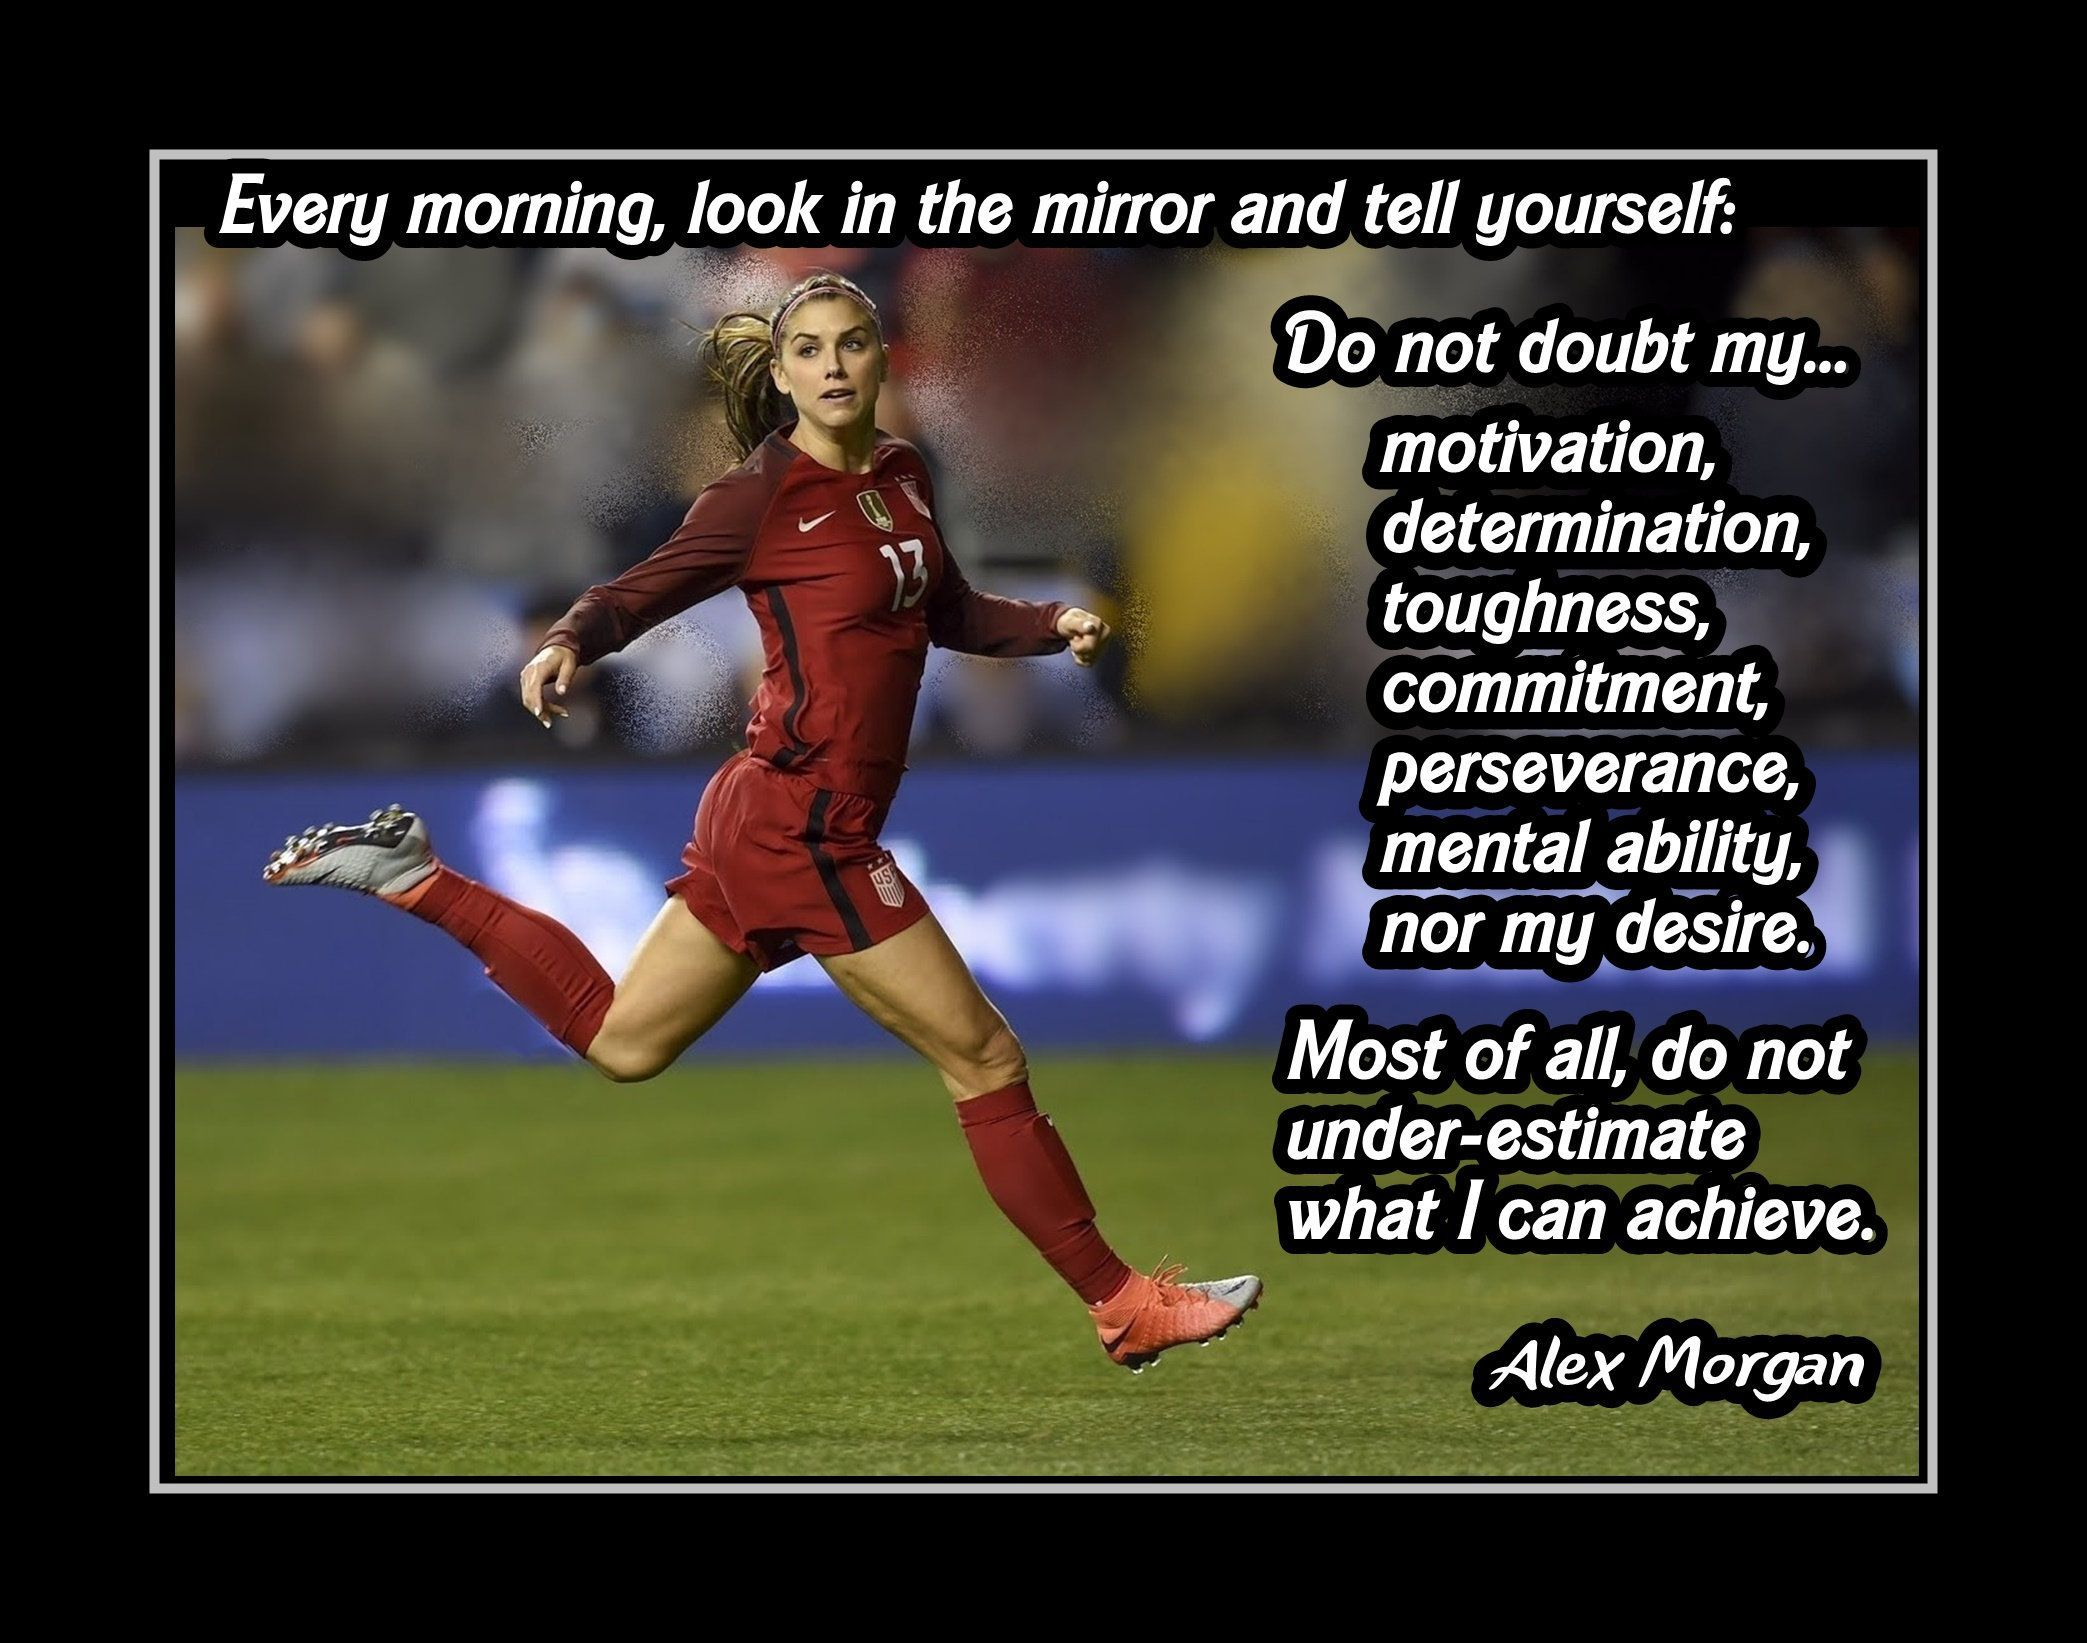 Inspirational Soccer Motivation Quote Wall Art Poster Daughter Best Friend Sister Birthday Gift Ale In 2020 Inspirational Soccer Quotes Soccer Motivation Soccer Quotes